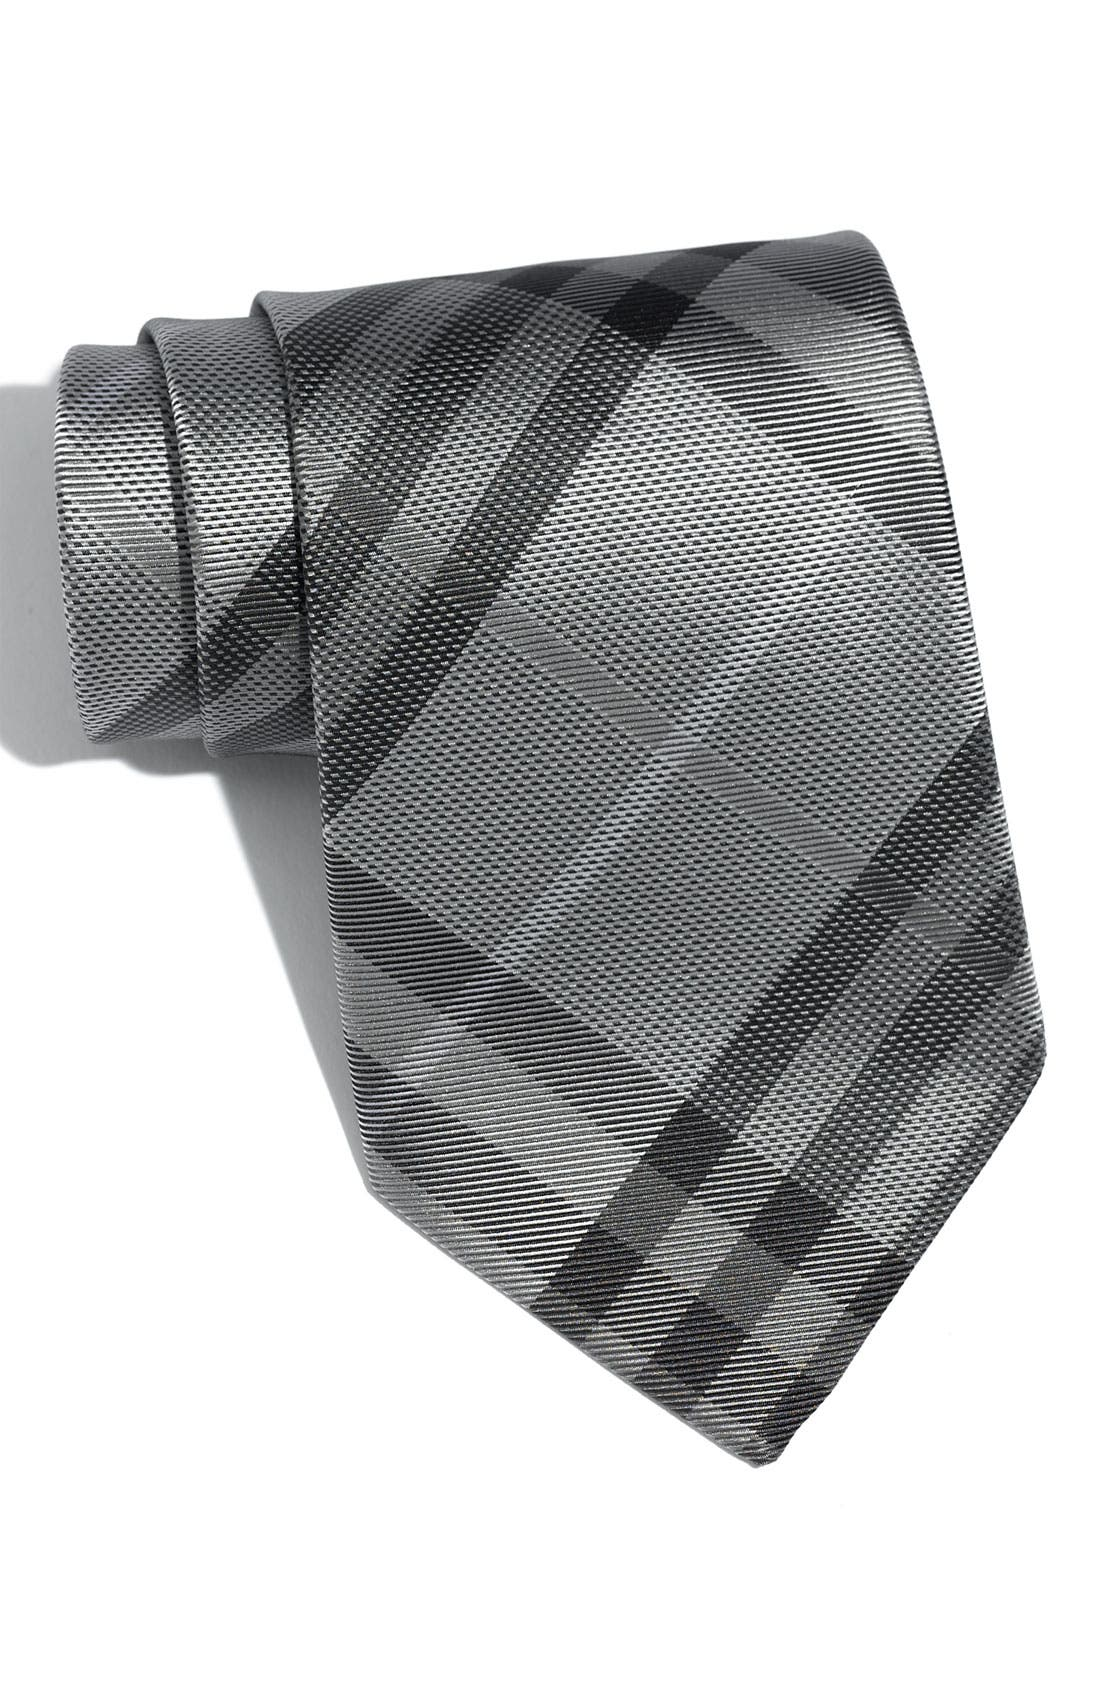 BURBERRY London 'Regent' Woven Silk Tie, Main, color, 050